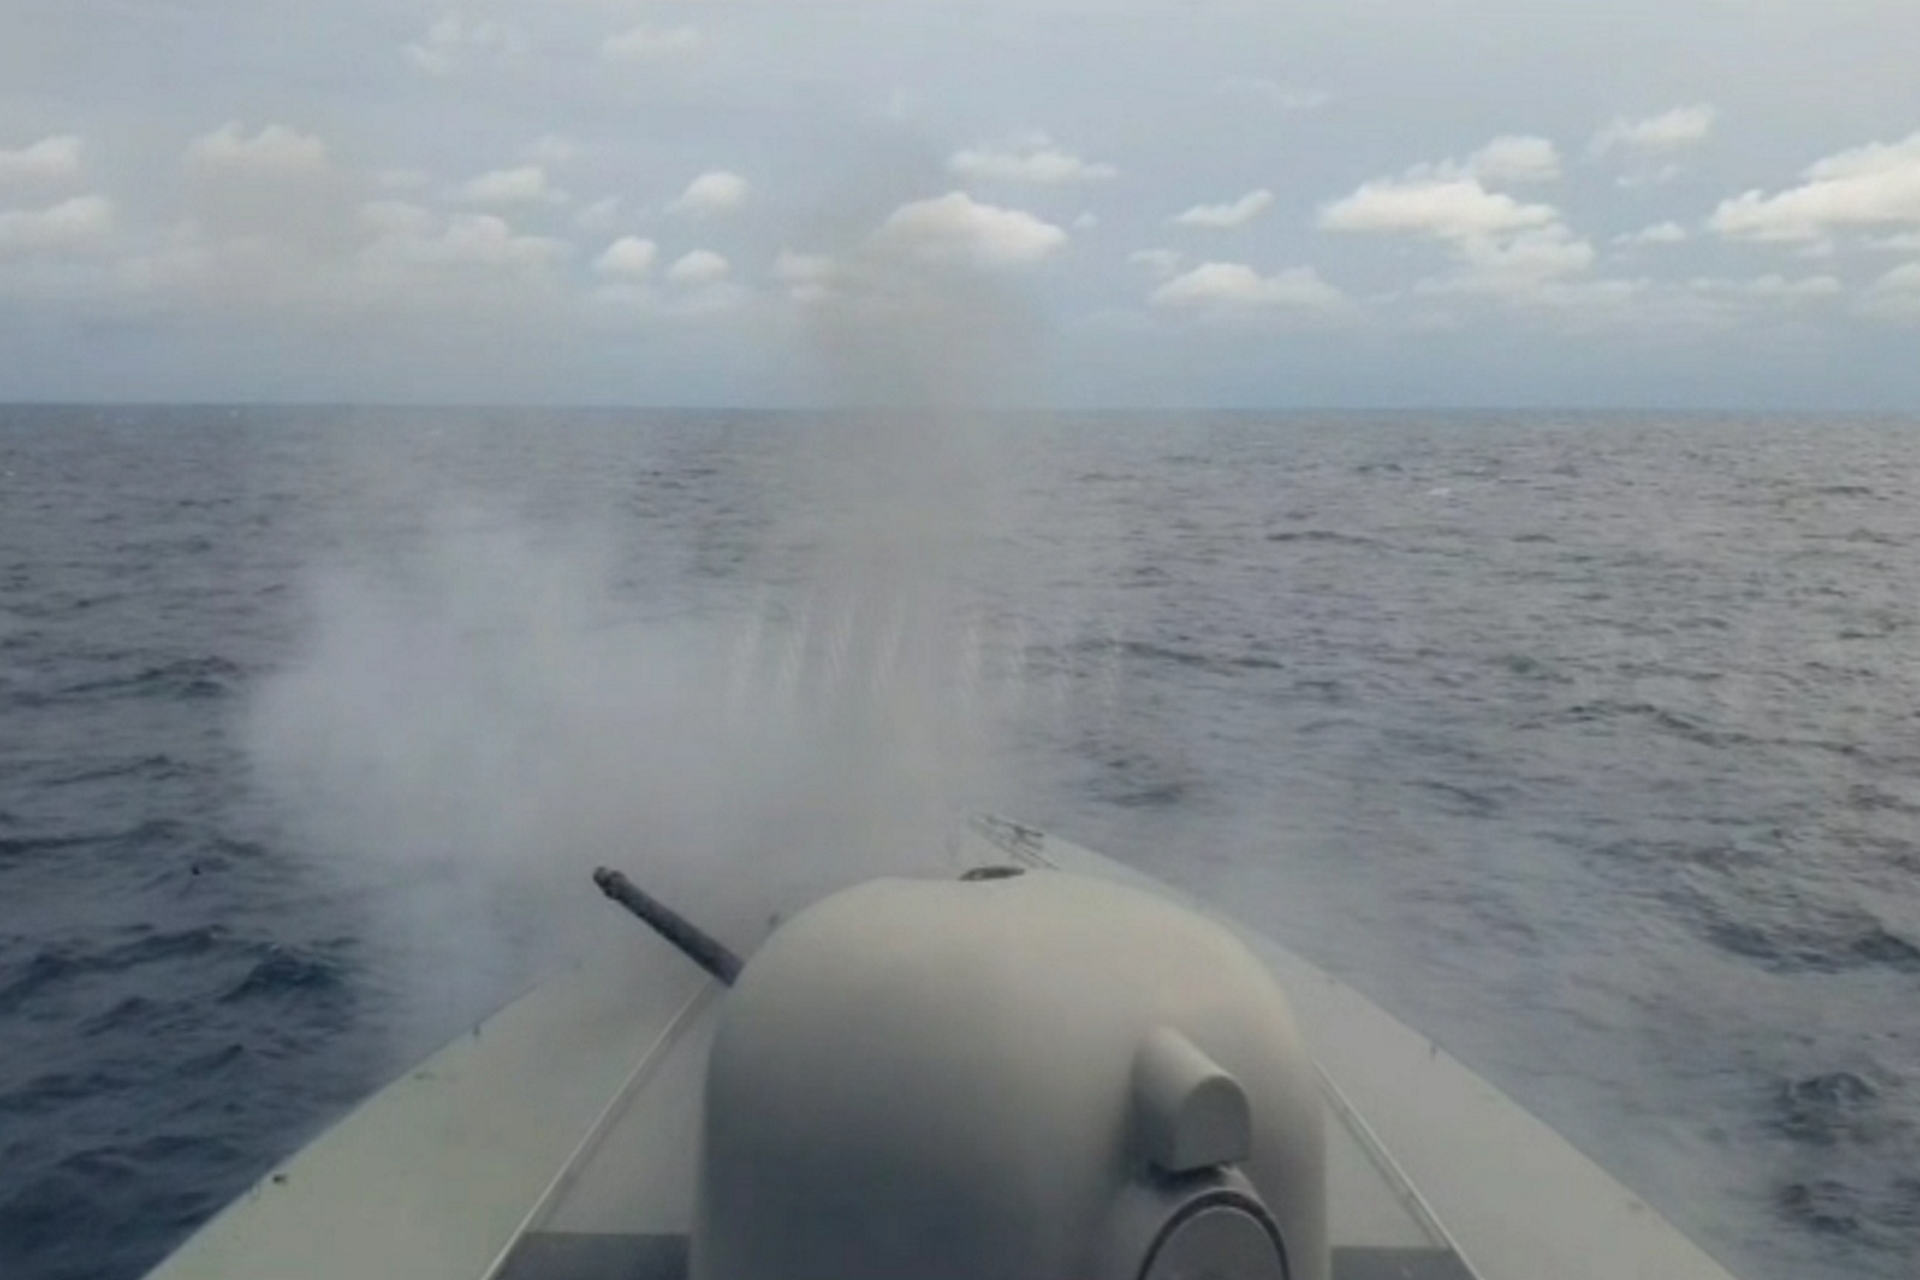 RSS Dauntless conducting a gunnery firing during the exercise.